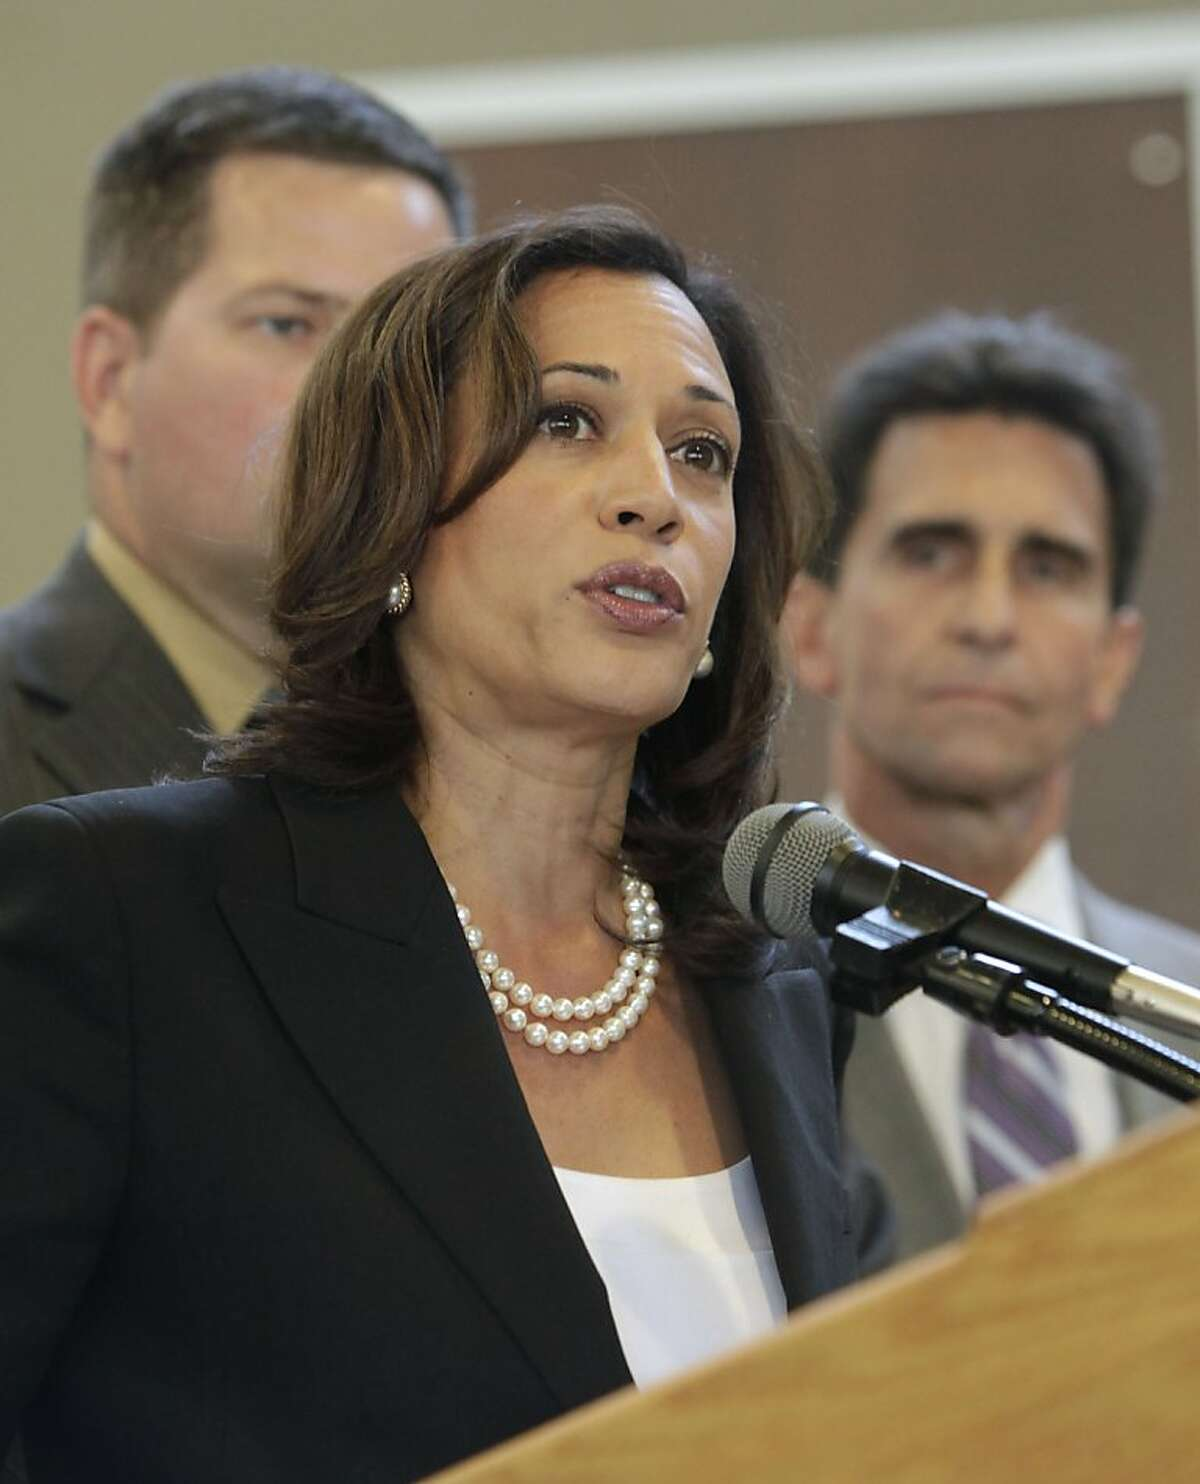 In this photo taken June 16, 2011, is California Attorney General Kamala Harris, announced, Friday, Sept., 30, 2011, that she will not agree to a settlement over foreclosure abuses being negotiated with major U.S. banks by other state and federal attorneys general. Harris's announcement is the latest to undermine a settlement had been in the works between the banks and the attorney generals in all 50 states. The agreement was supposed to settle claims of poor mortgage and foreclosure practices, including document fraud..(AP Photo/Rich Pedroncelli) Ran on: 10-01-2011 Attorney General Kamala Harris says the state will not accept terms that would grant immunity to the lenders.